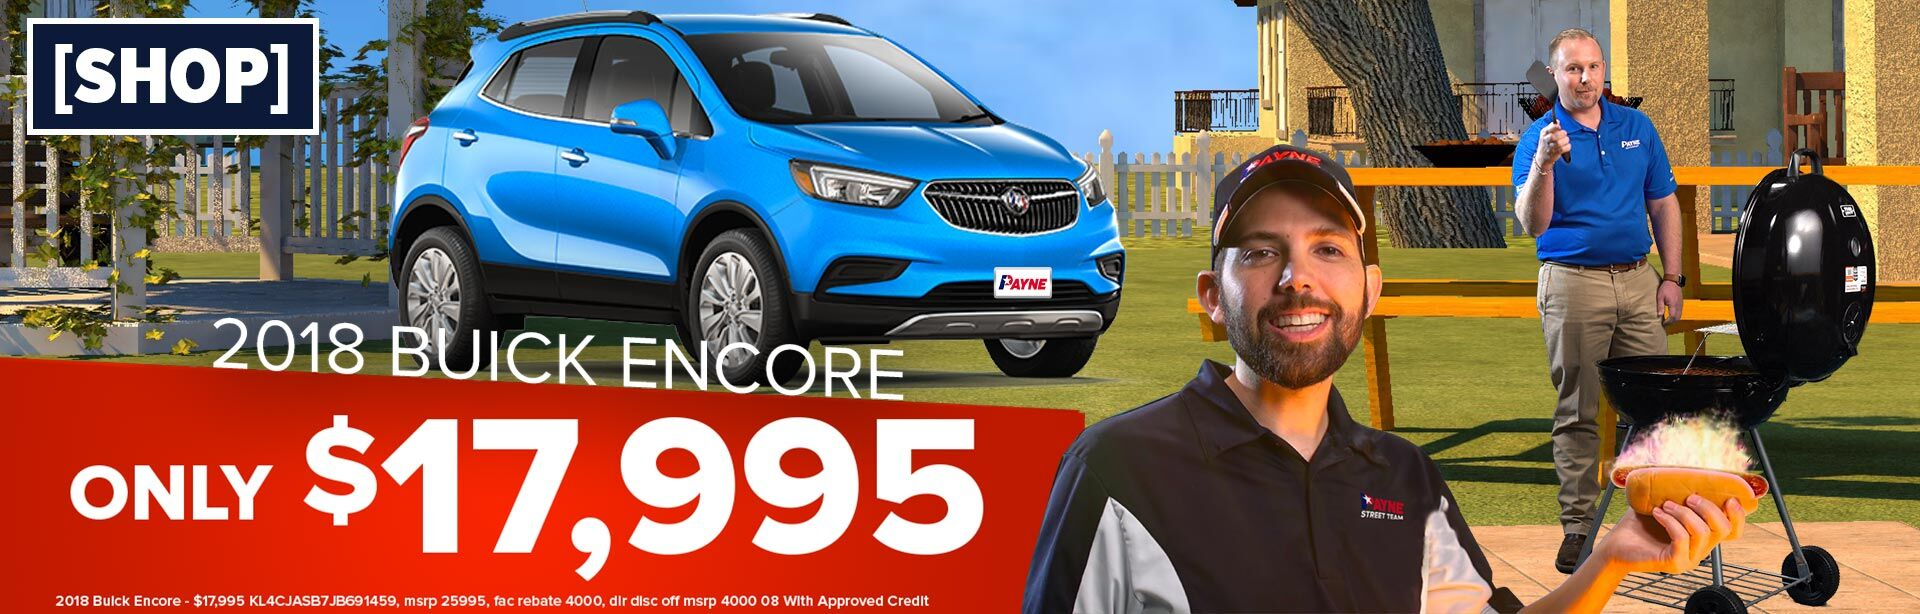 June 2018 Buick Encore